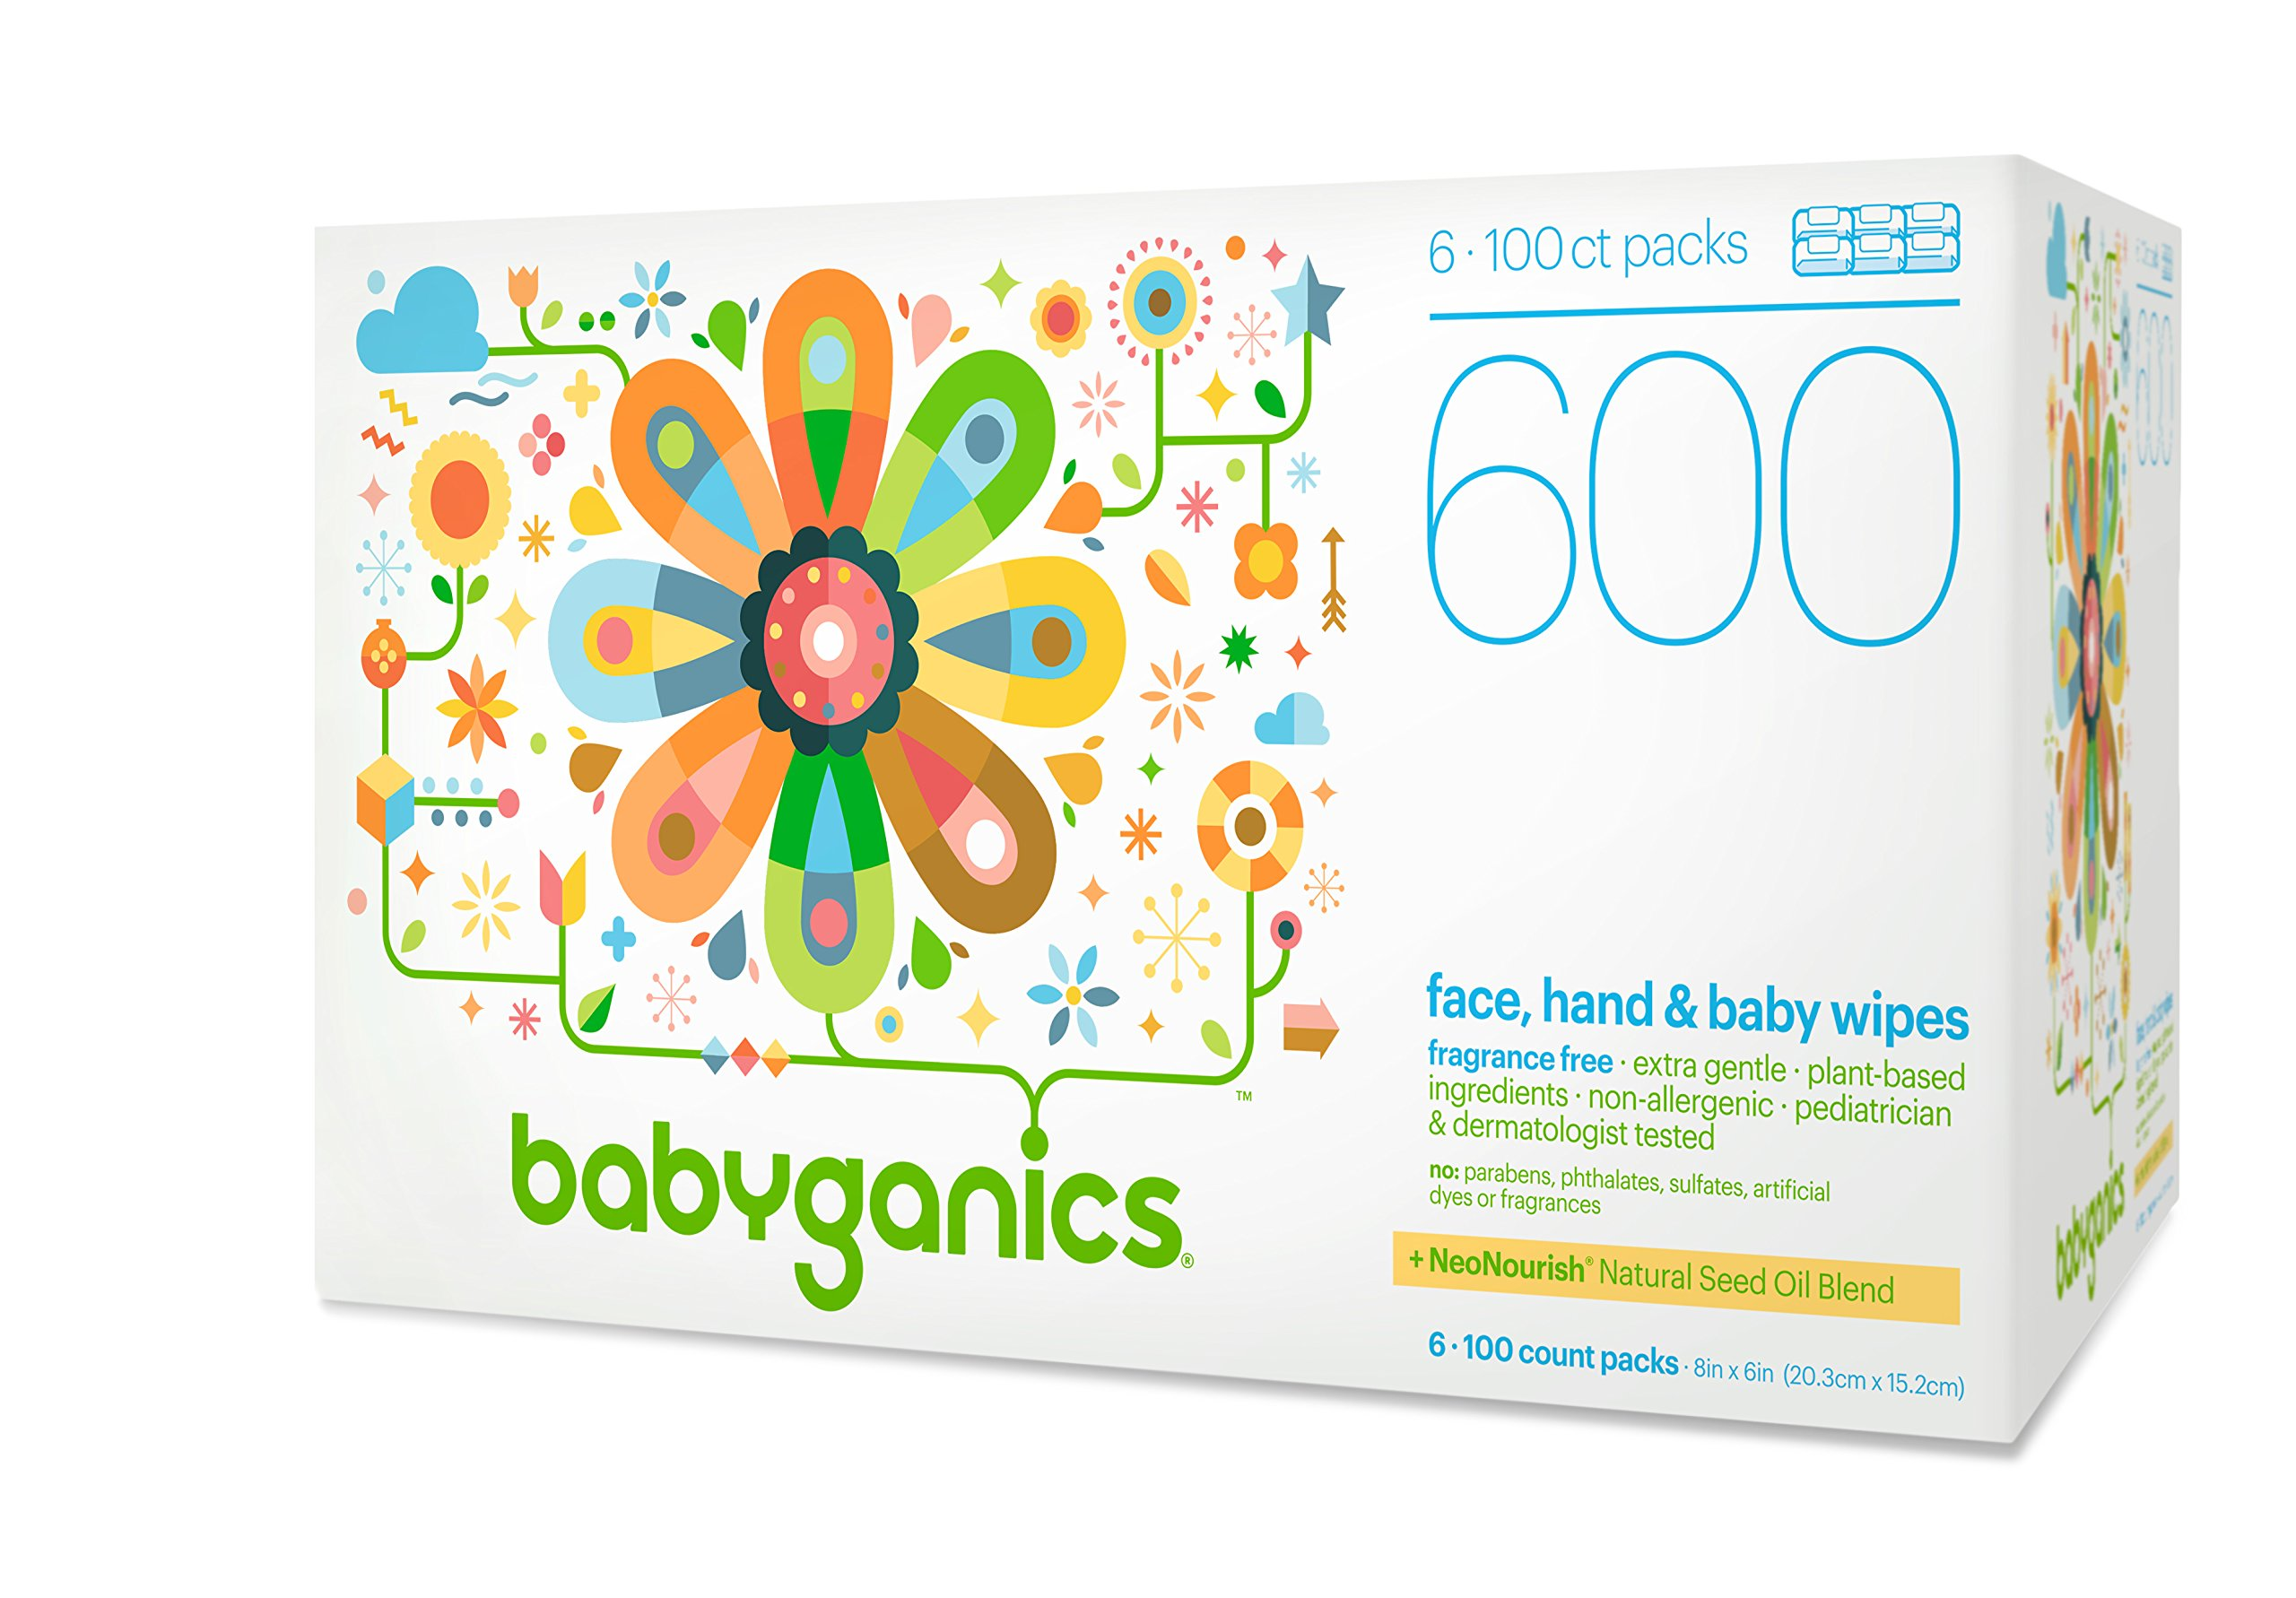 Babyganics Baby Wipes, Unscented, 600 Count (6 Packs of 100 Wipes), Packaging may vary